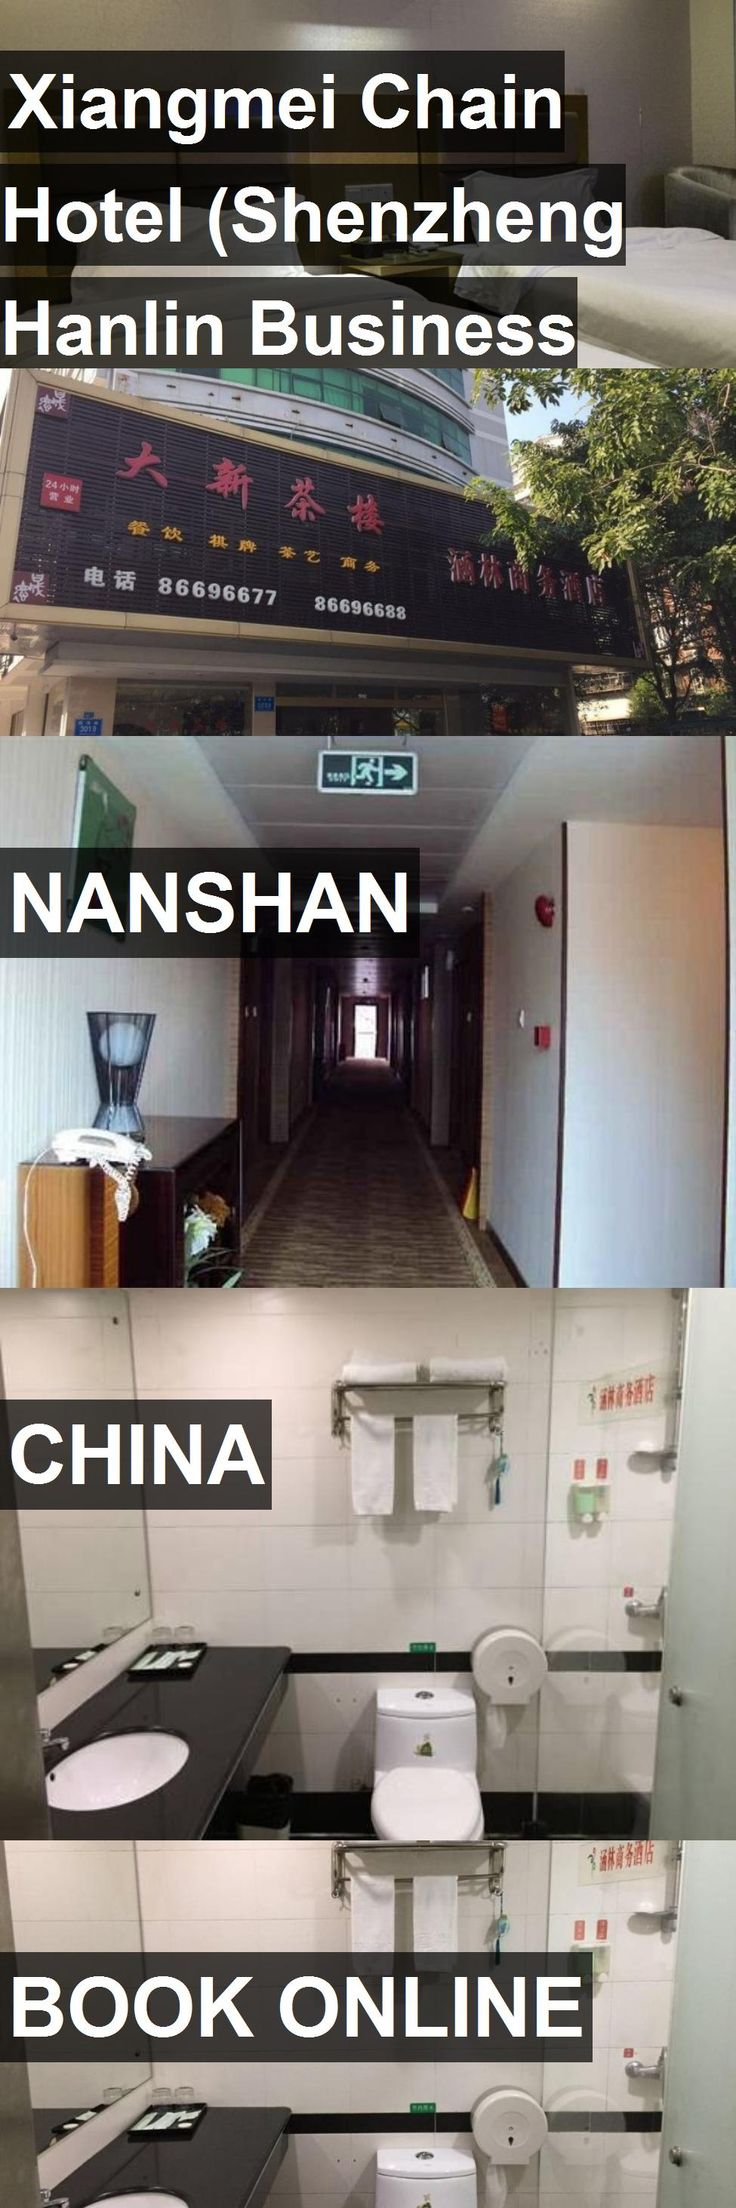 Hotel Xiangmei Chain Hotel (Shenzheng Hanlin Business Hotel) in Nanshan, China. For more information, photos, reviews and best prices please follow the link. #China #Nanshan #XiangmeiChainHotel(ShenzhengHanlinBusinessHotel) #hotel #travel #vacation